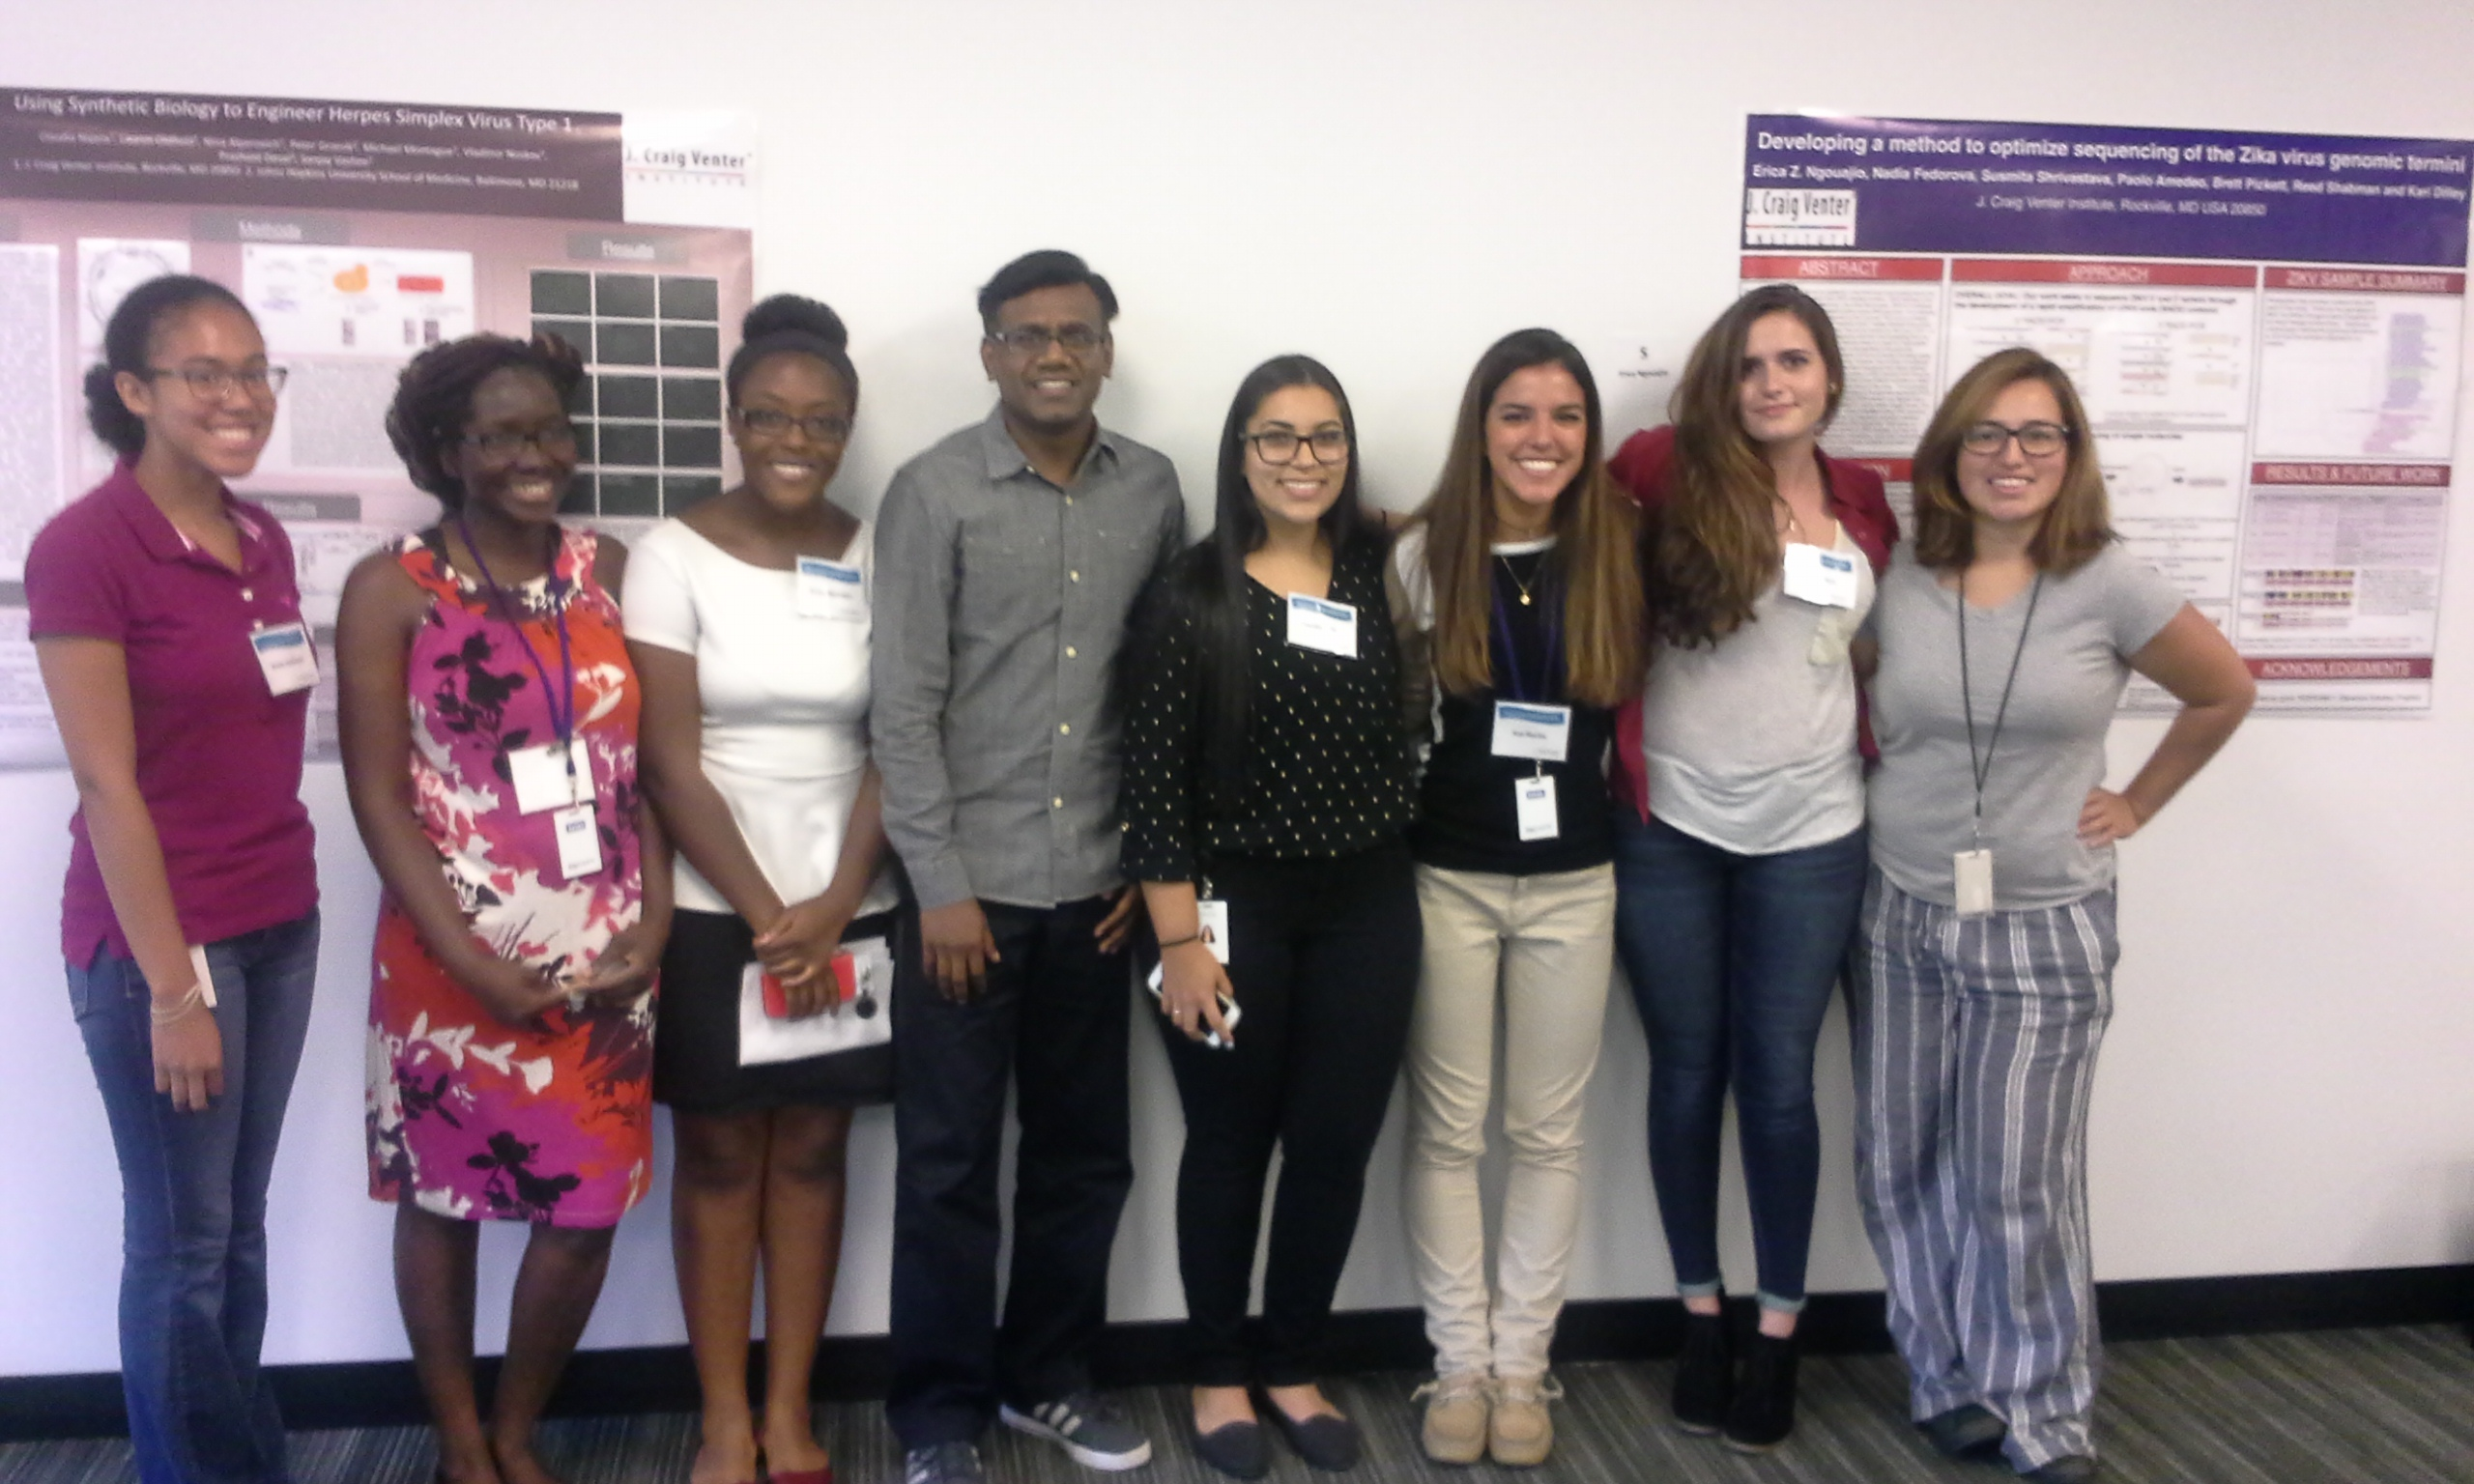 GSP interns Emily Samuels, Rolande Tra Lou, Erica Ngouajio, Raja Venkatappa (mentor), Claudia Najera, Kat Rocha, Tayah Bolt (from La Jolla) and Kenya Platero gather at JCVI Rockville's poster session.